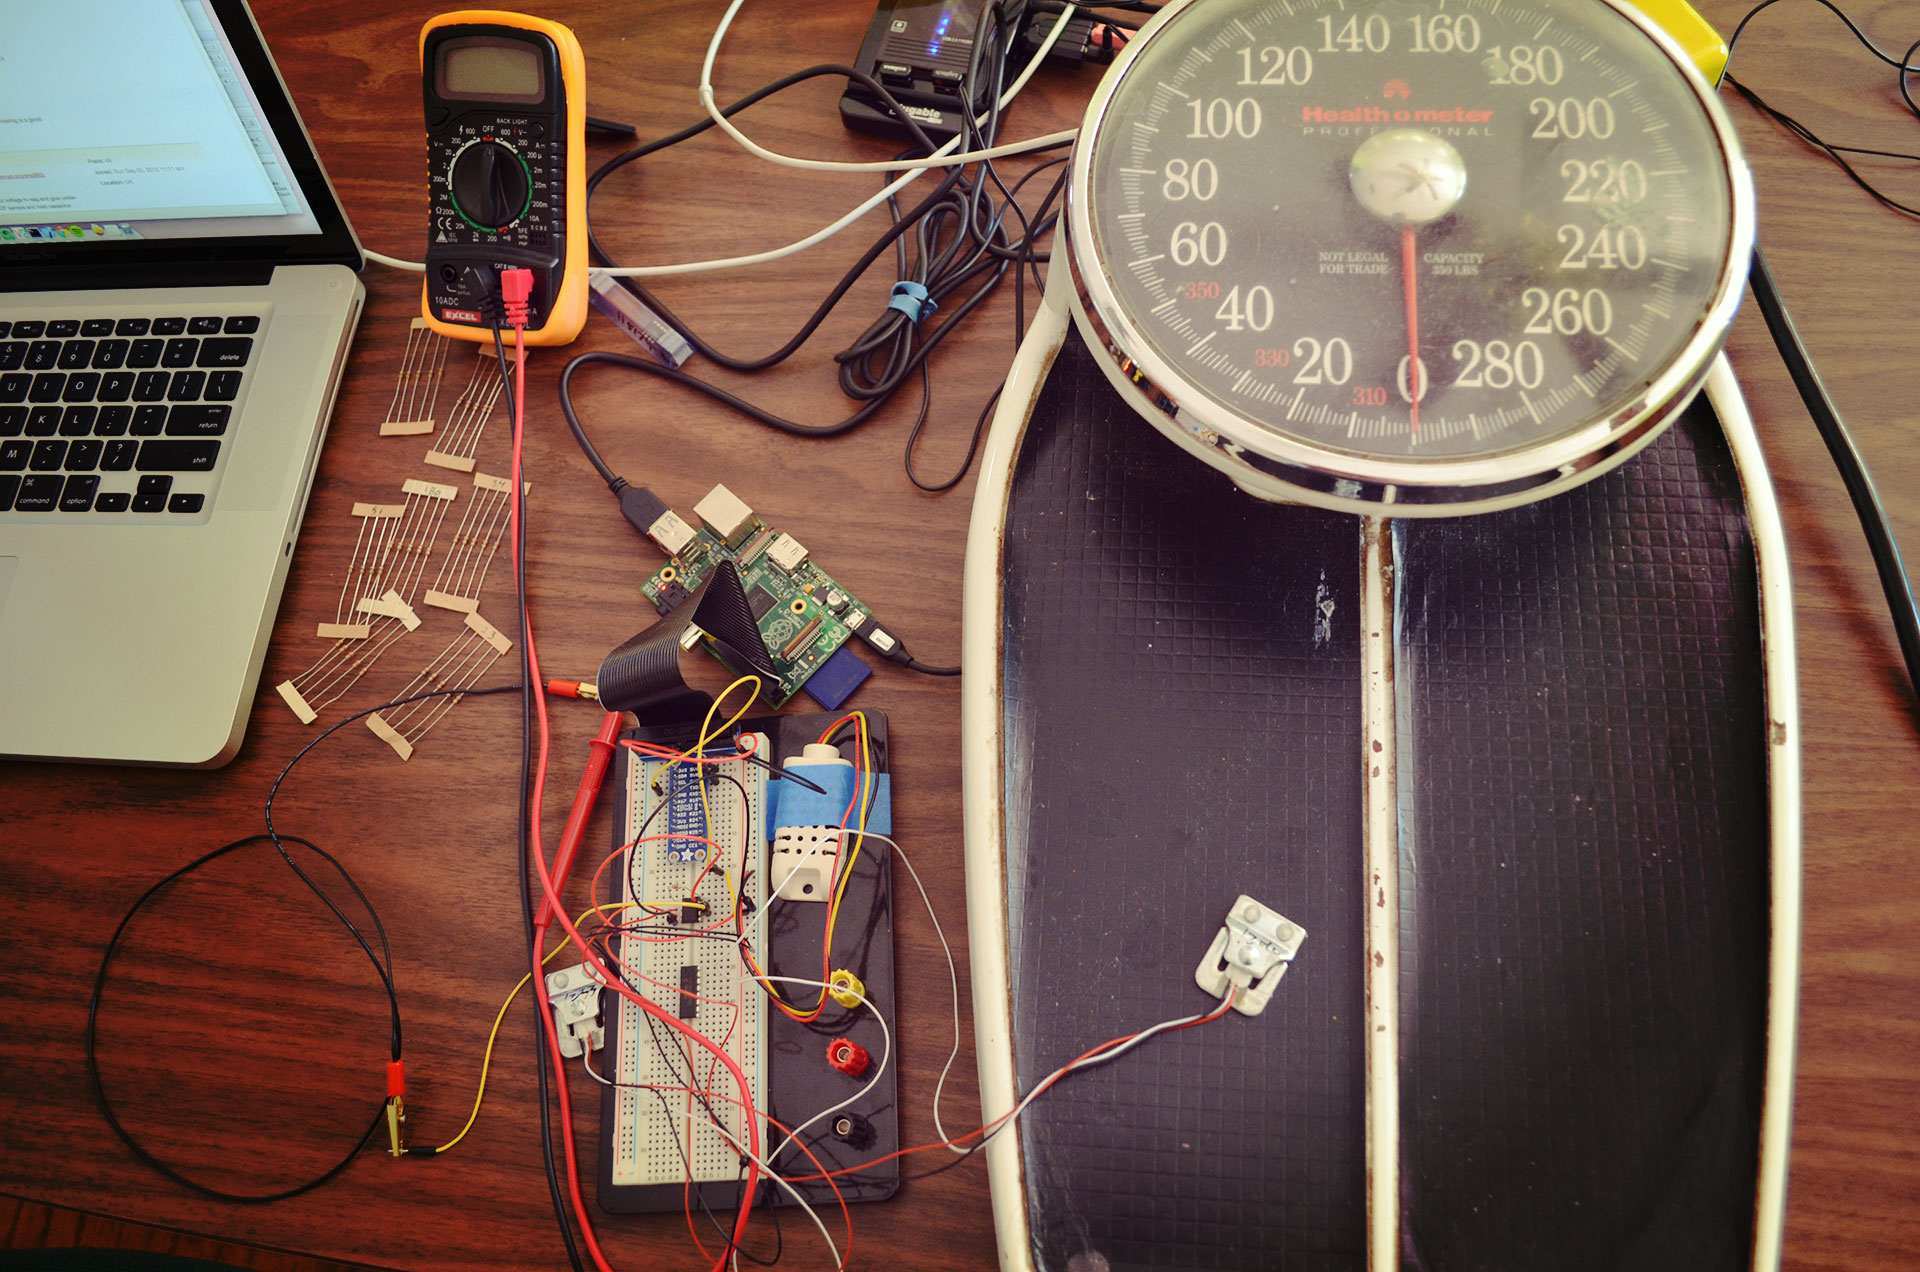 Circuit with weight sensor on scale to record reference points of analog voltage